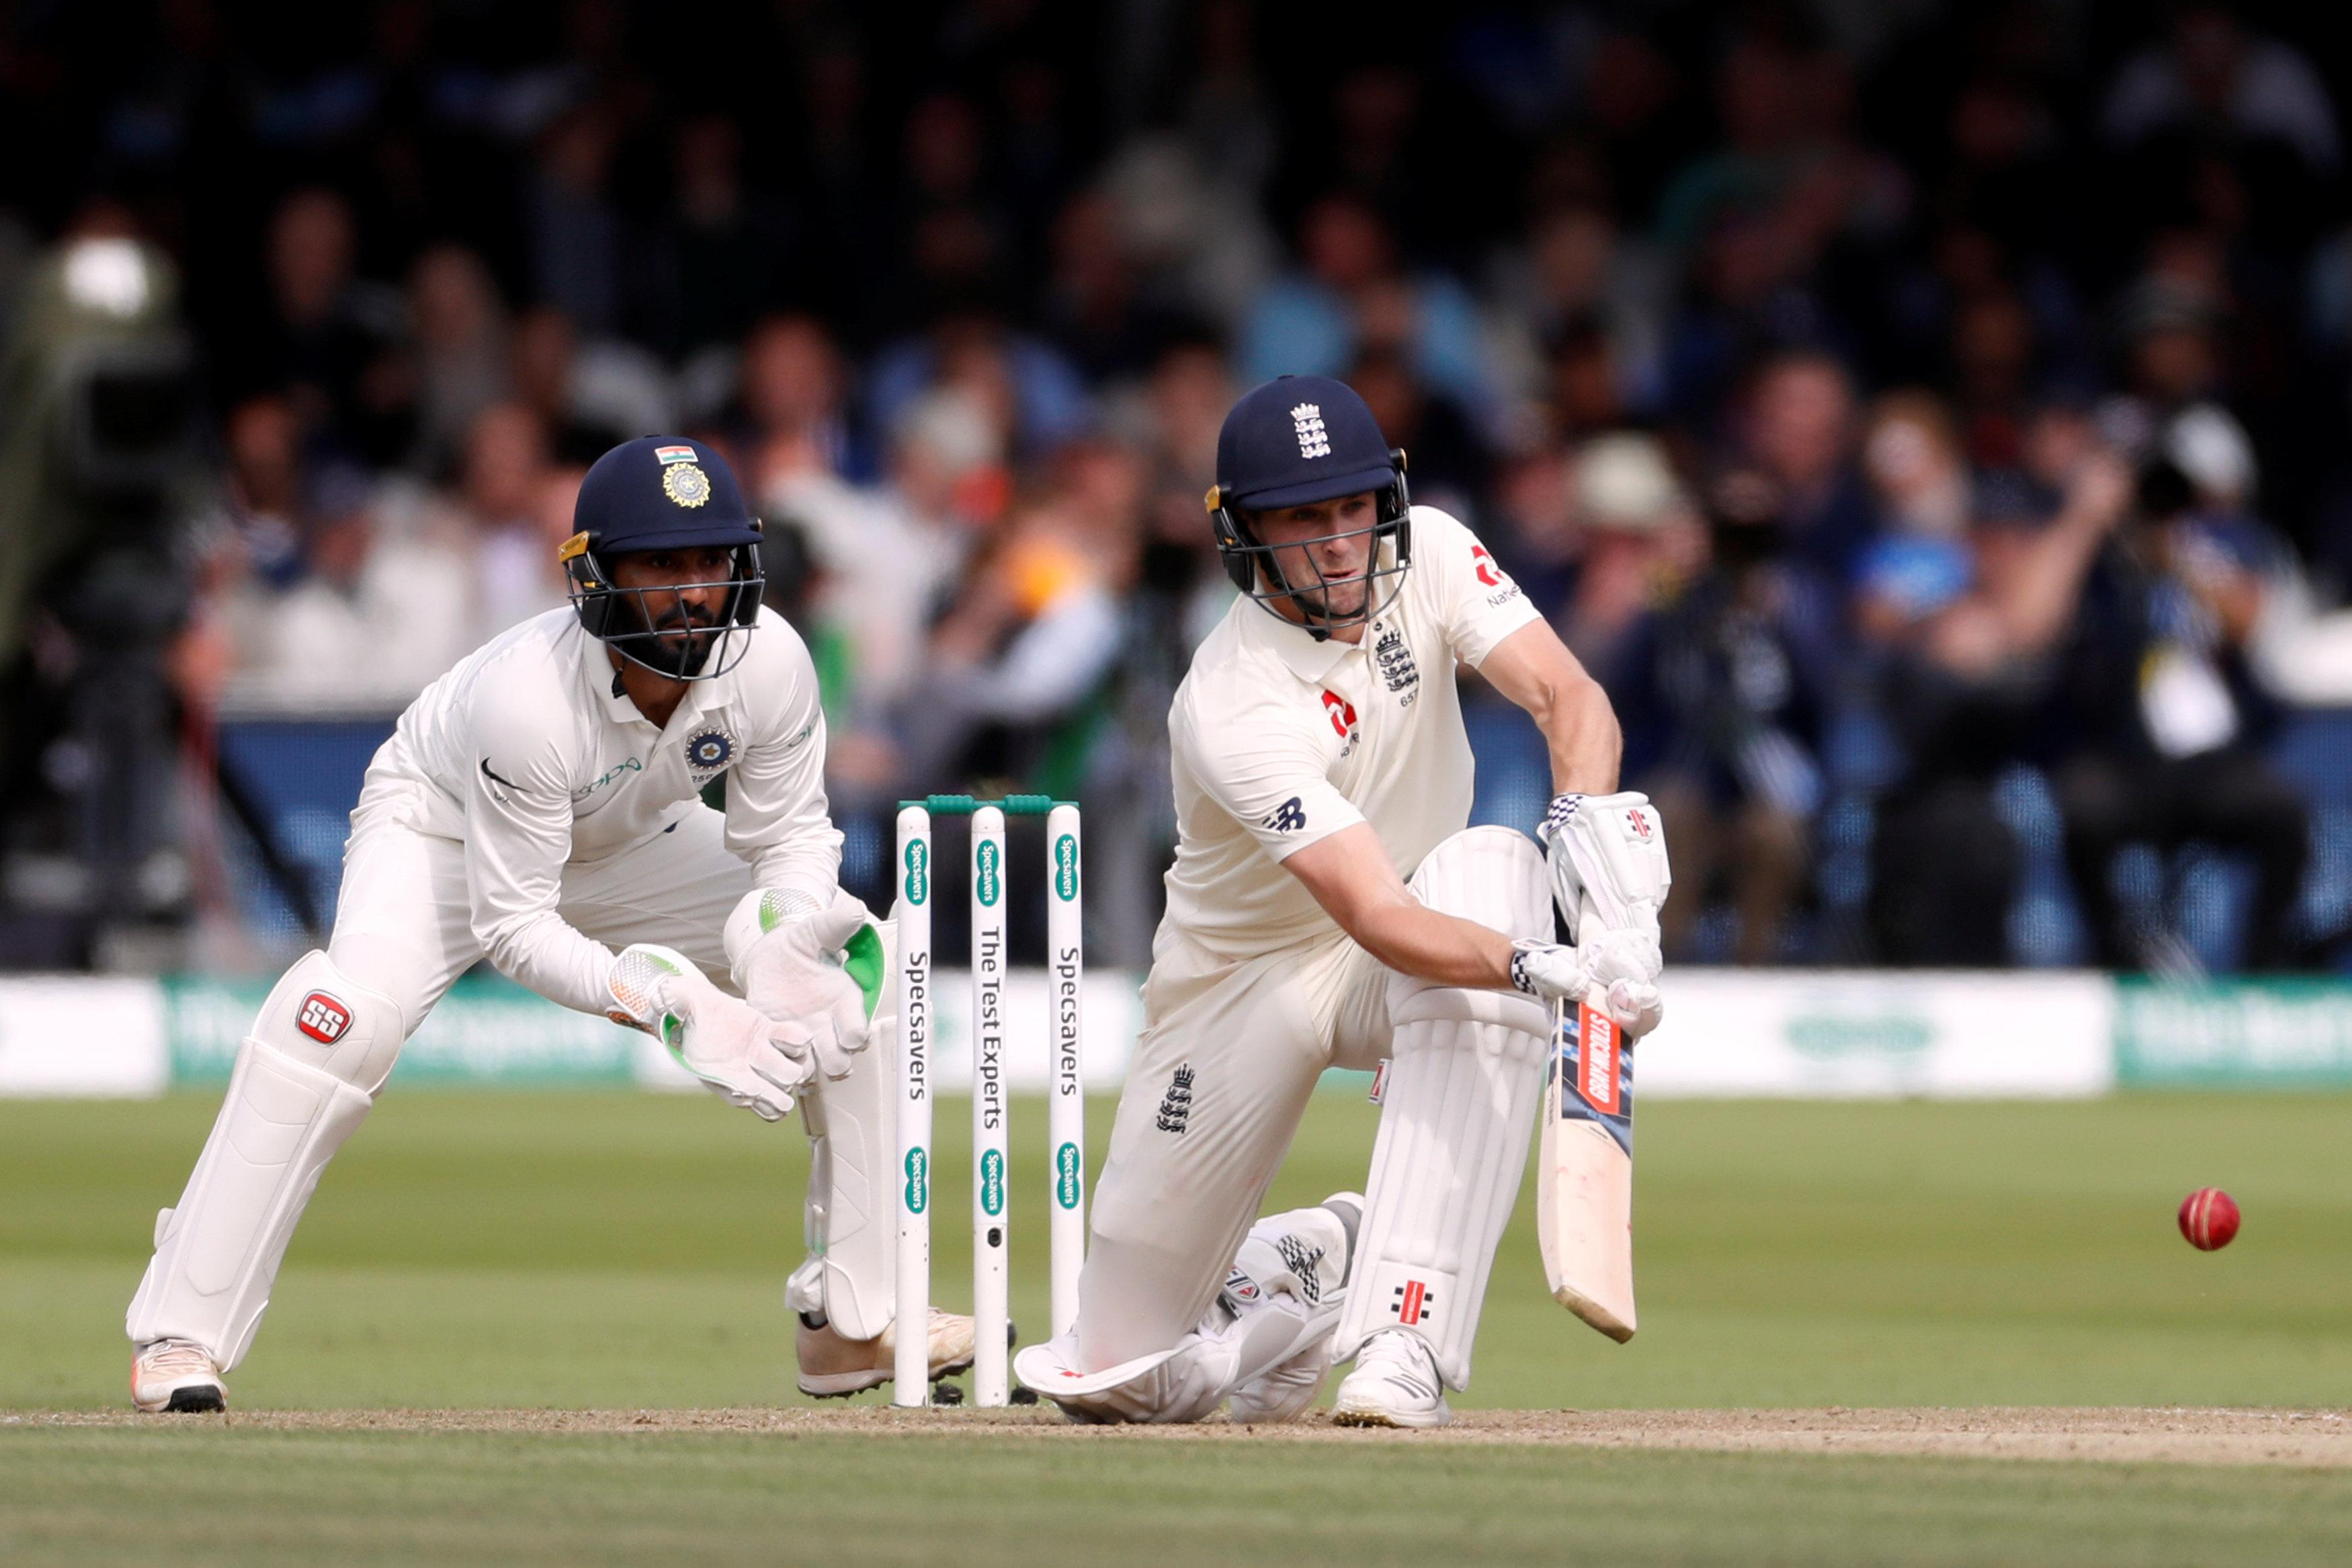 Chris Woakes scored his maiden Test century at Lord's